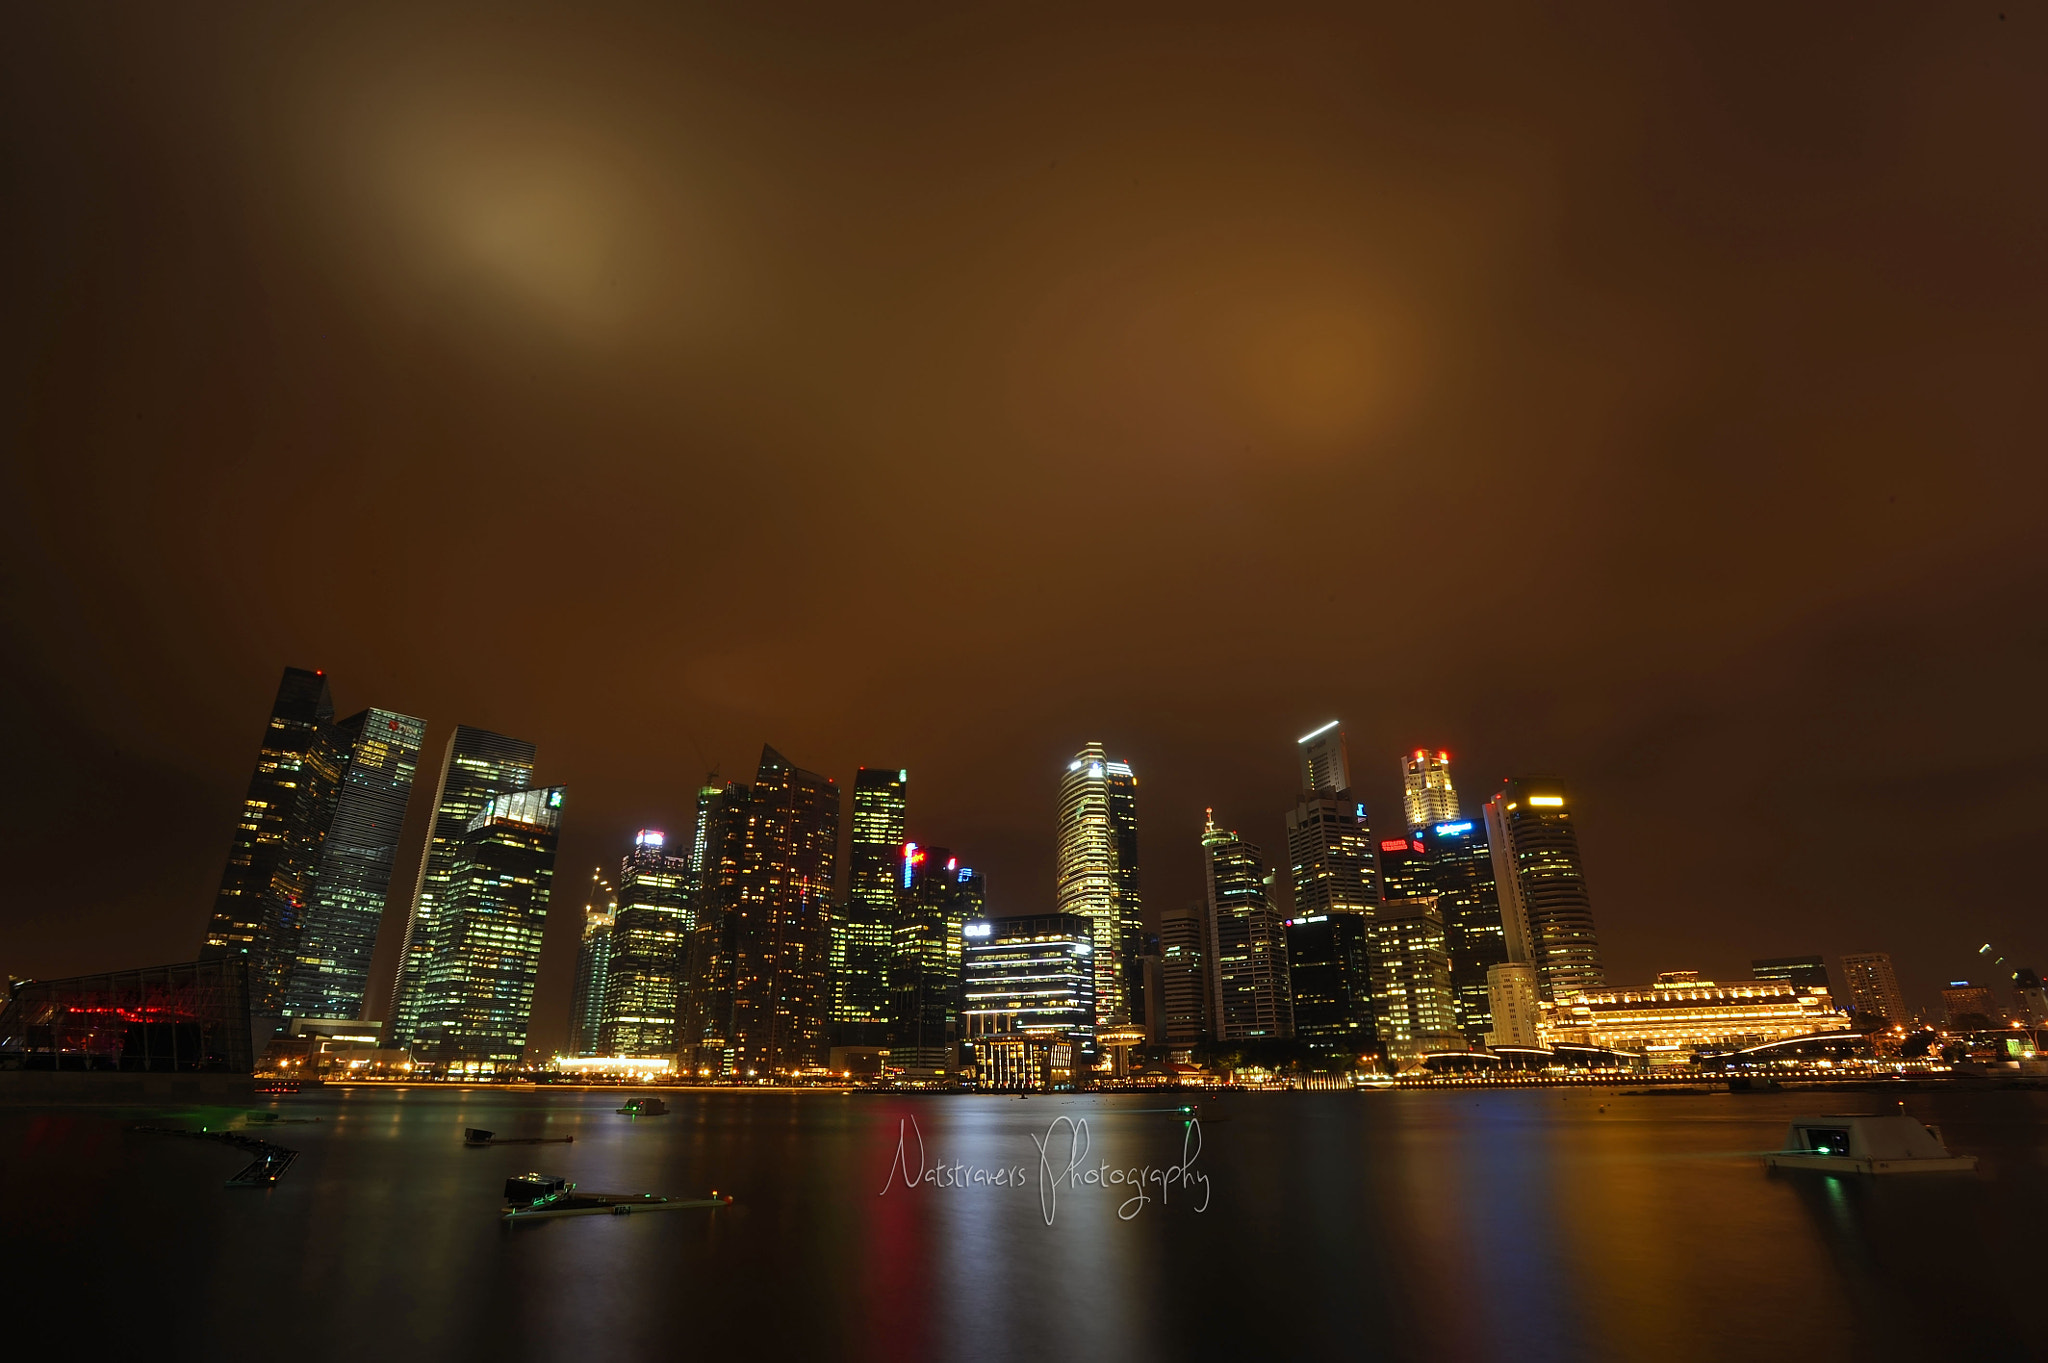 Photograph Marina Bay Singapore by Nathalie Stravers on 500px